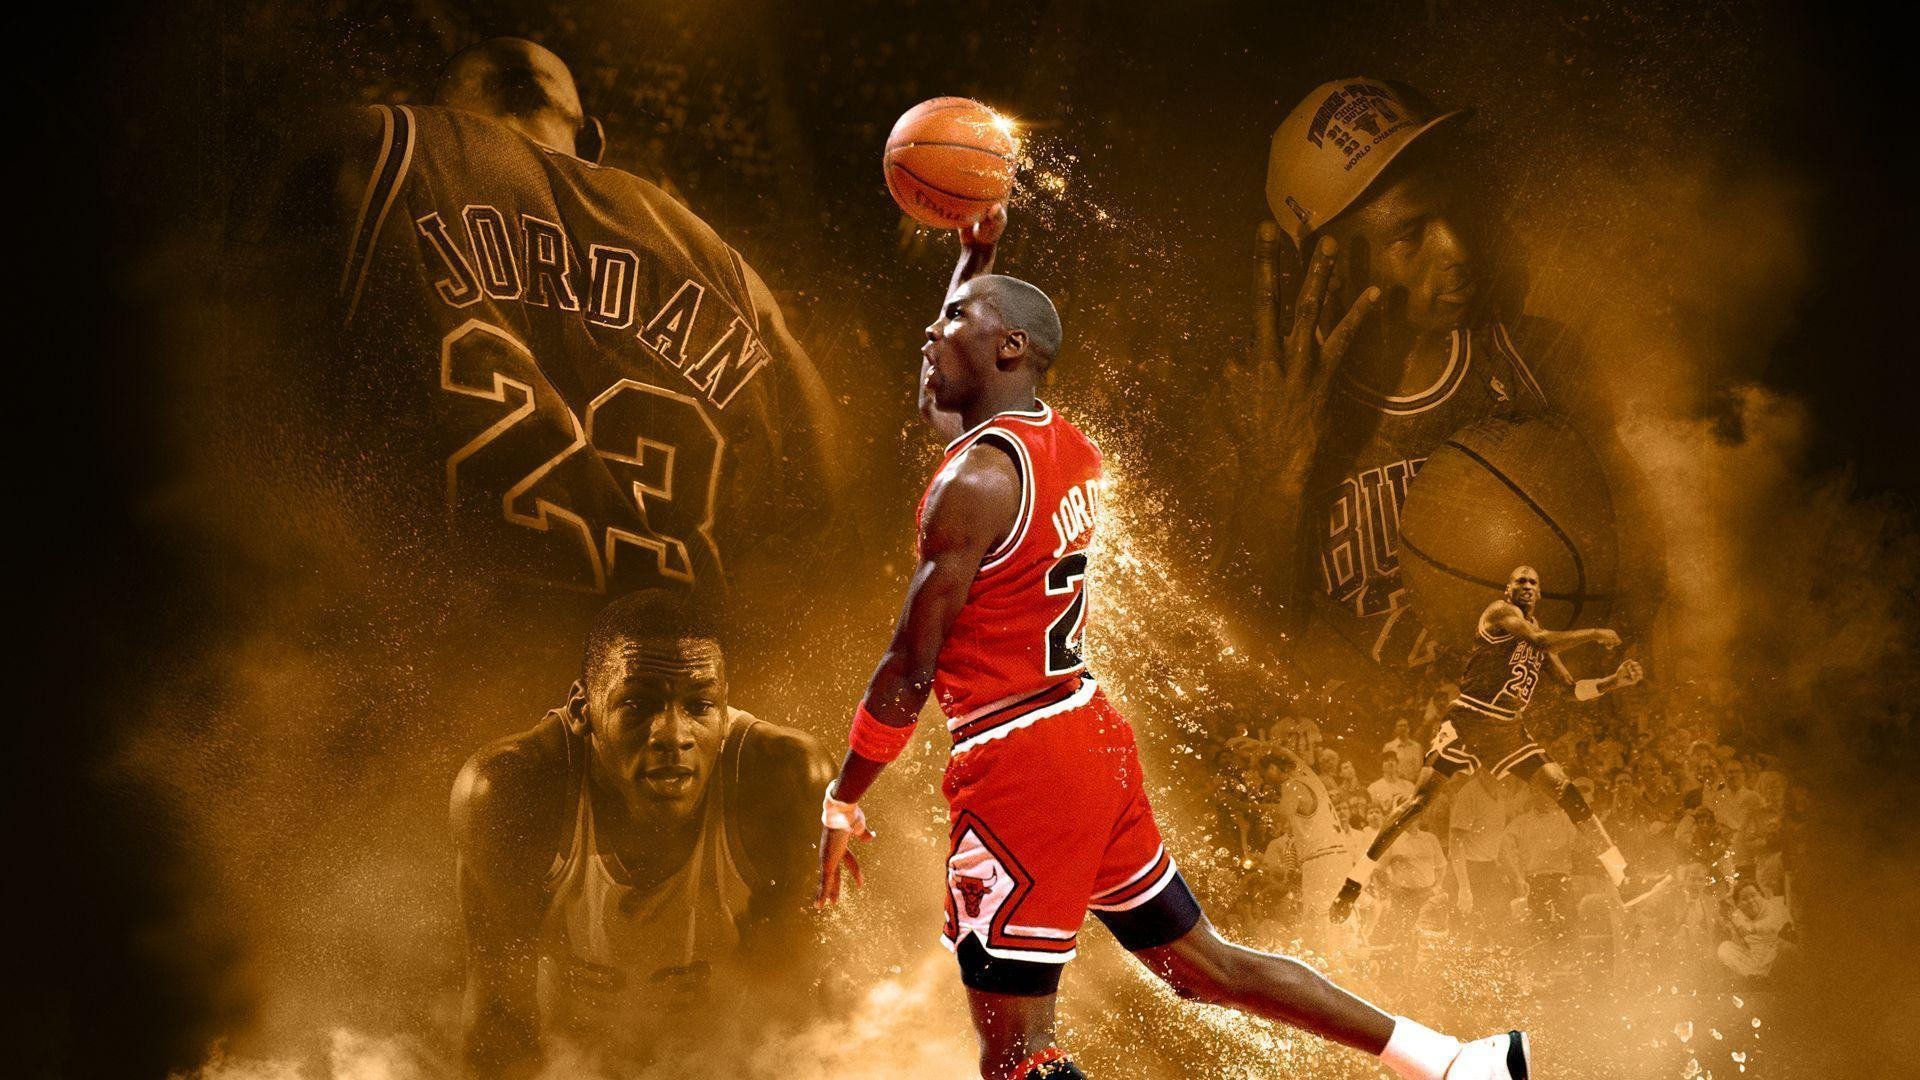 basketball nba wallpapers wallpapers backgrounds images art